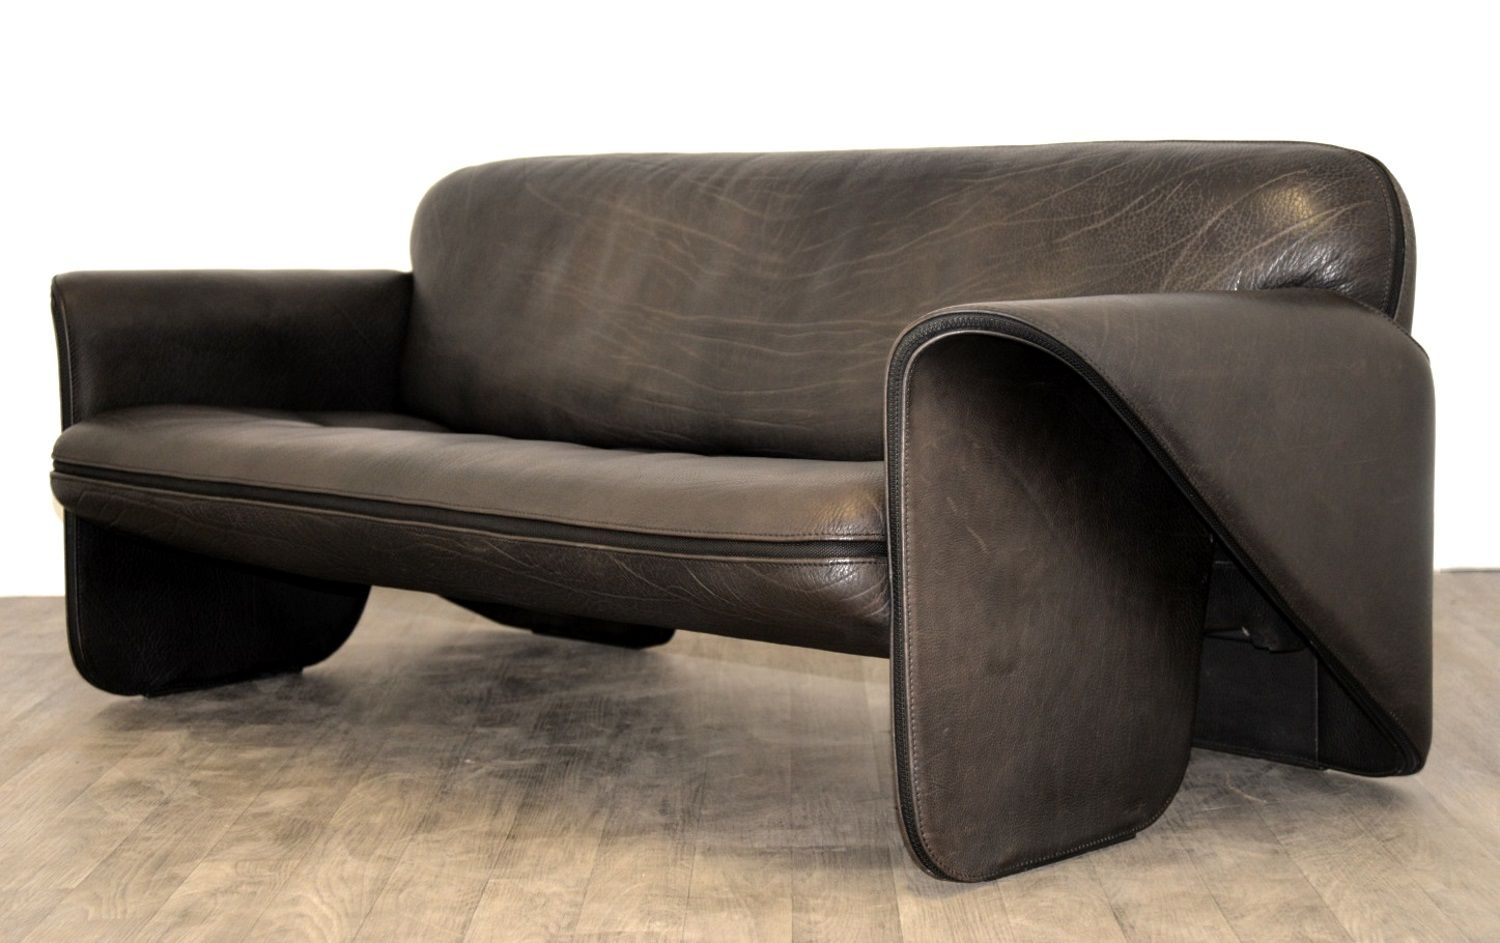 DS 125 Sofa by Gerd Lange for de Sede, 1979 for sale at Pamono